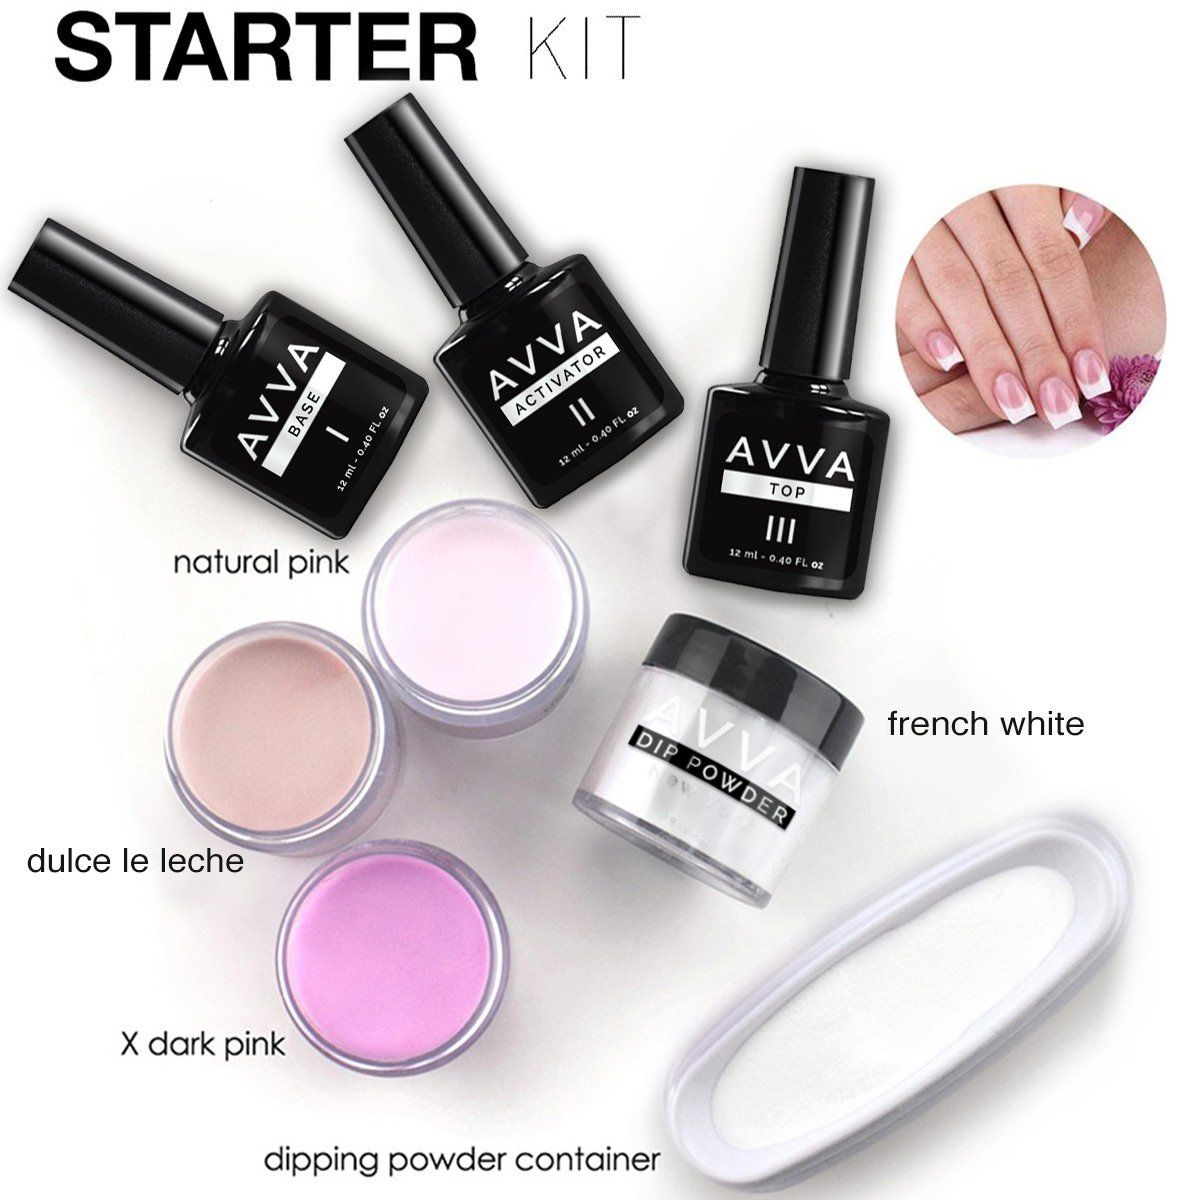 AVVA DIY Dip Powder Starter Kit in 2019 Dip powder